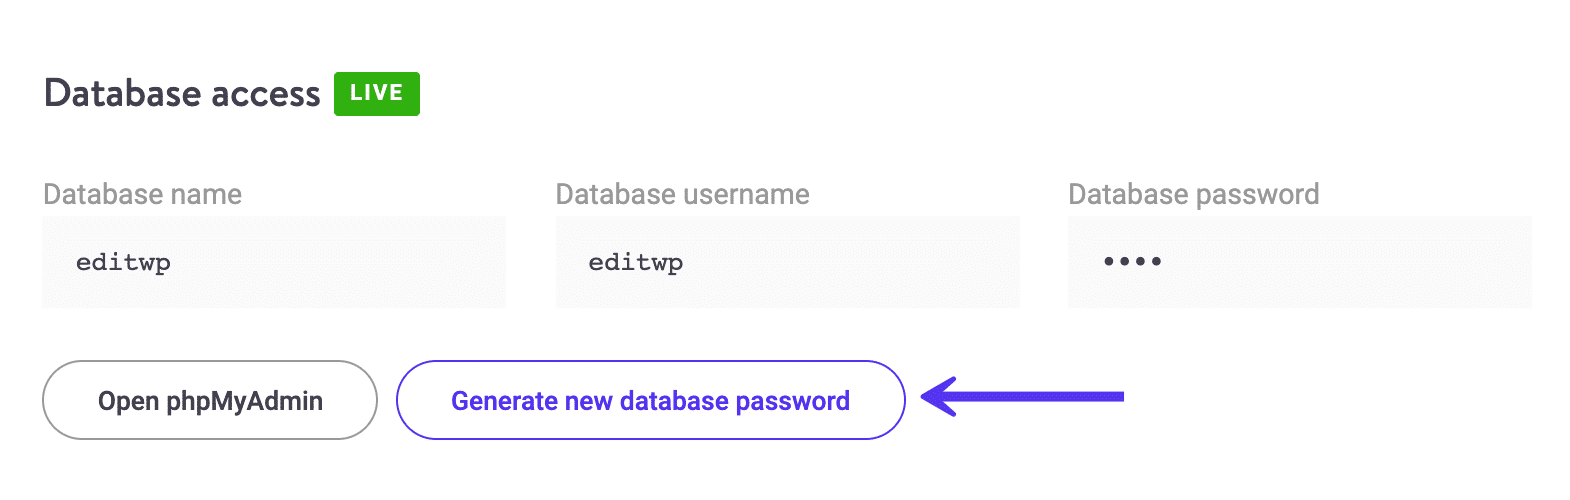 Generate a new database password